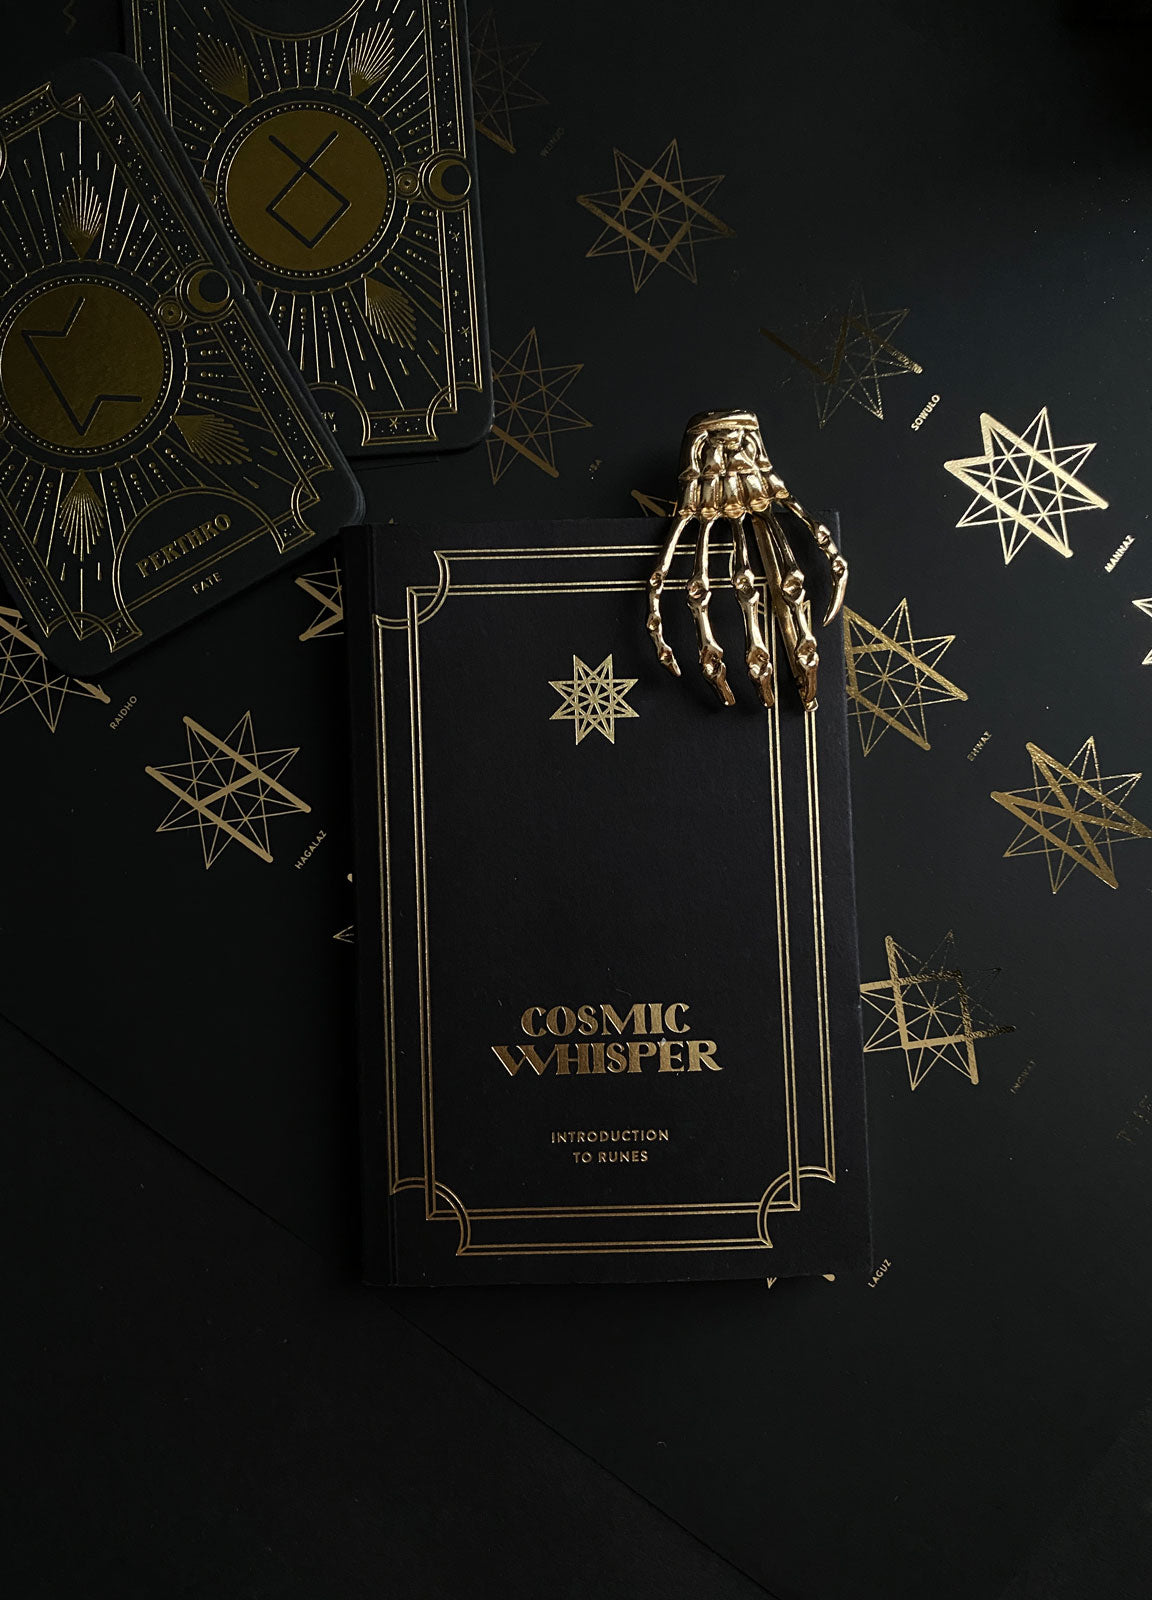 Cosmic Whisper - The Rune Deck